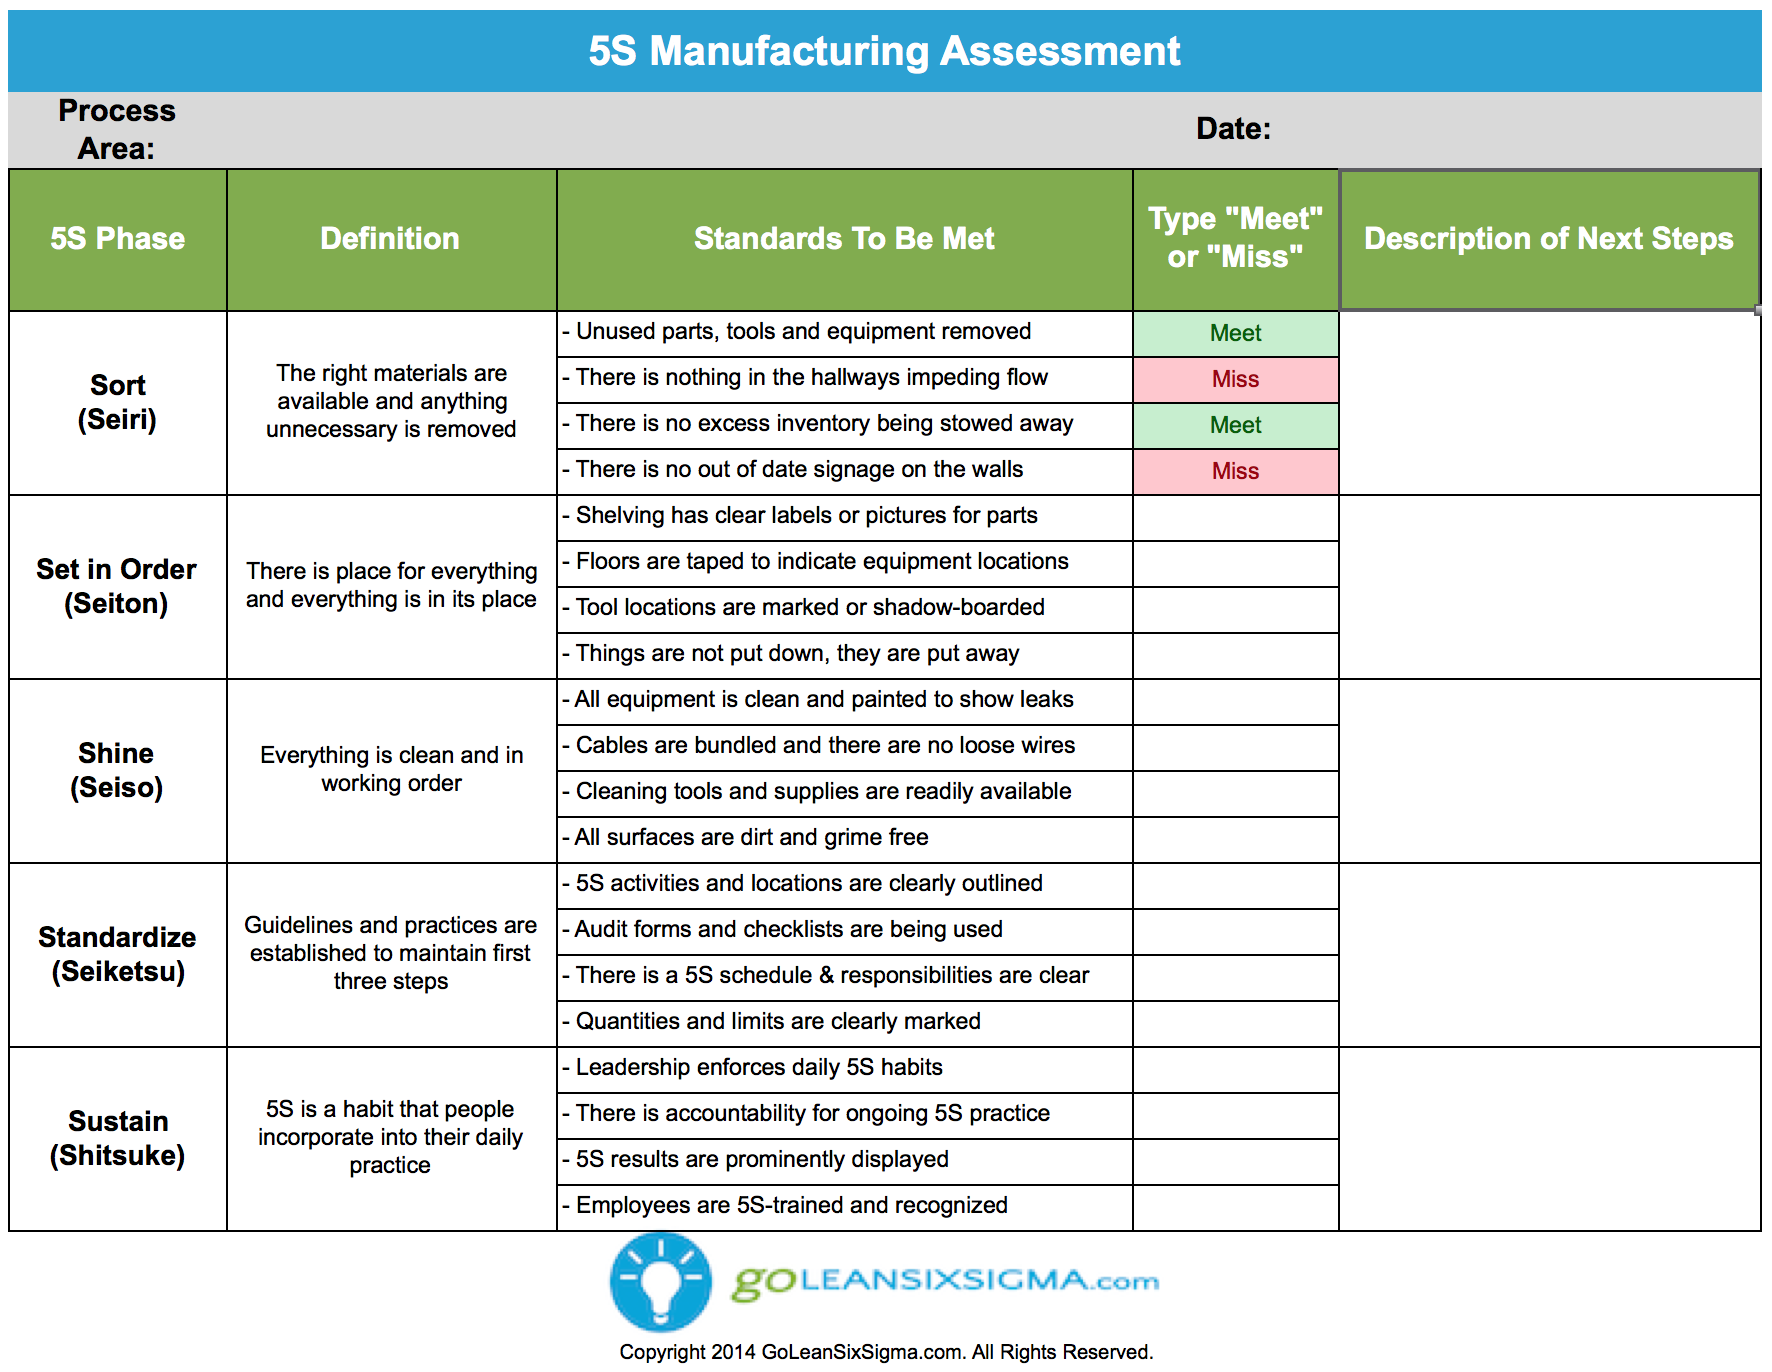 5s Manufacturing Assessment Work Pinterest Lean Six Sigma